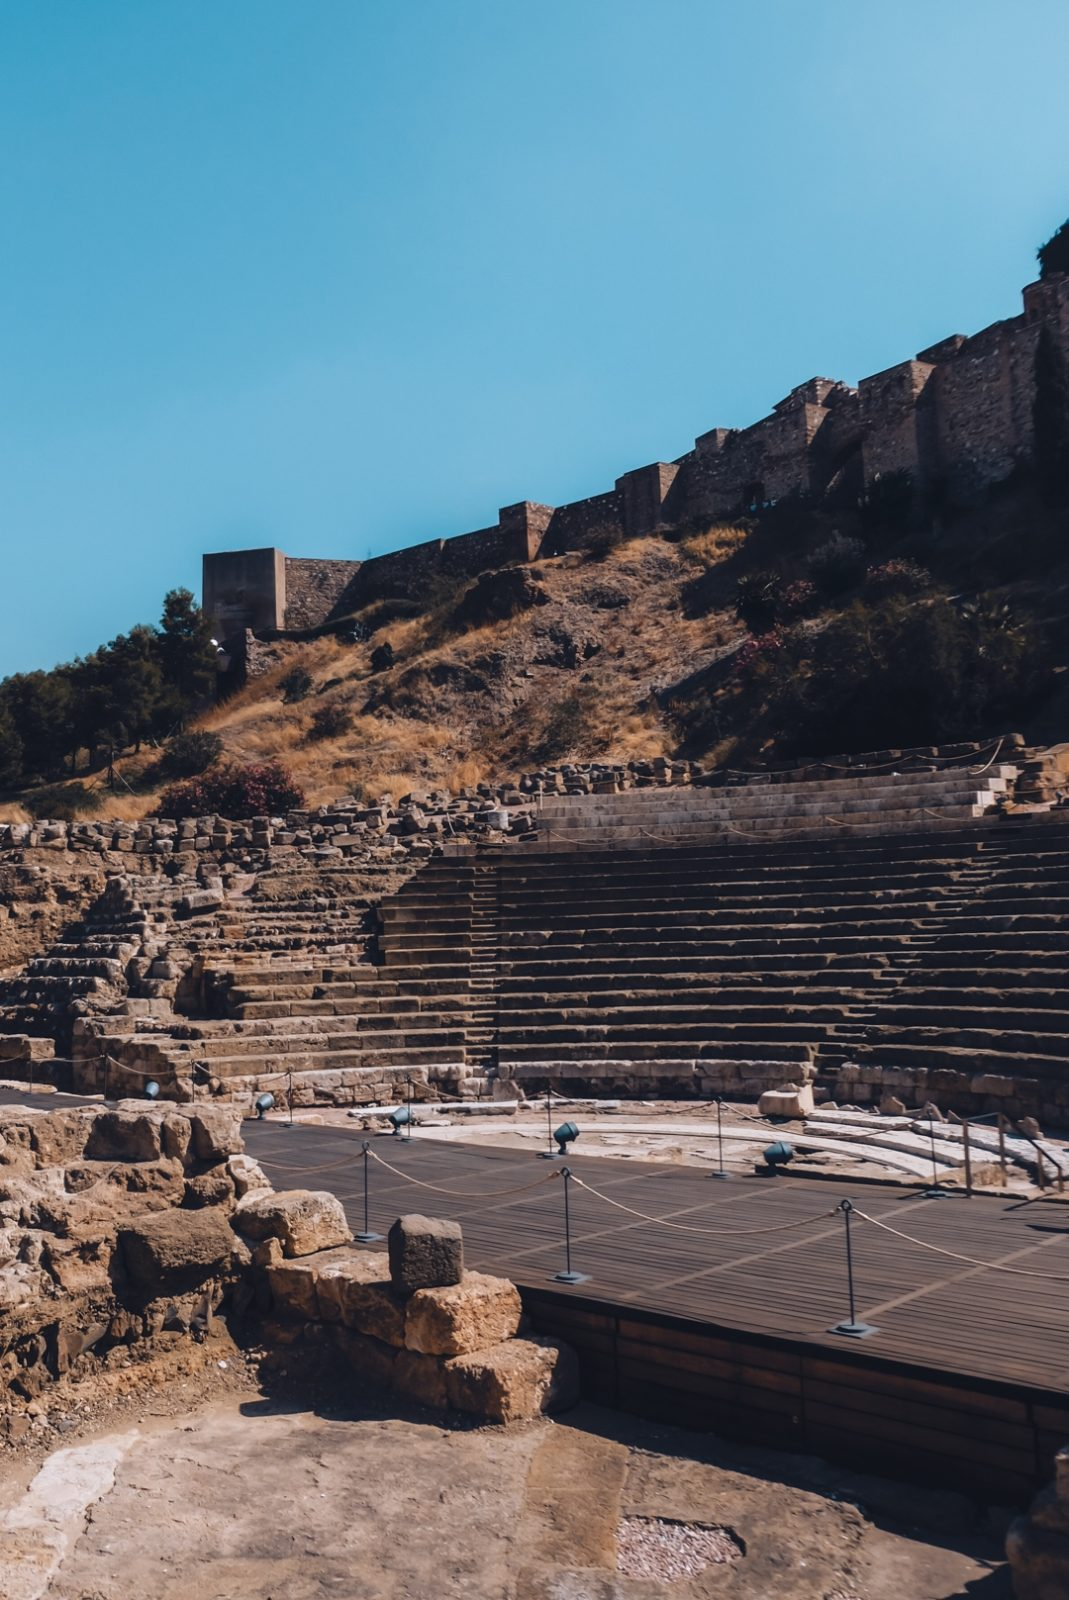 The ancient Roman Theatre in Malaga city centre.